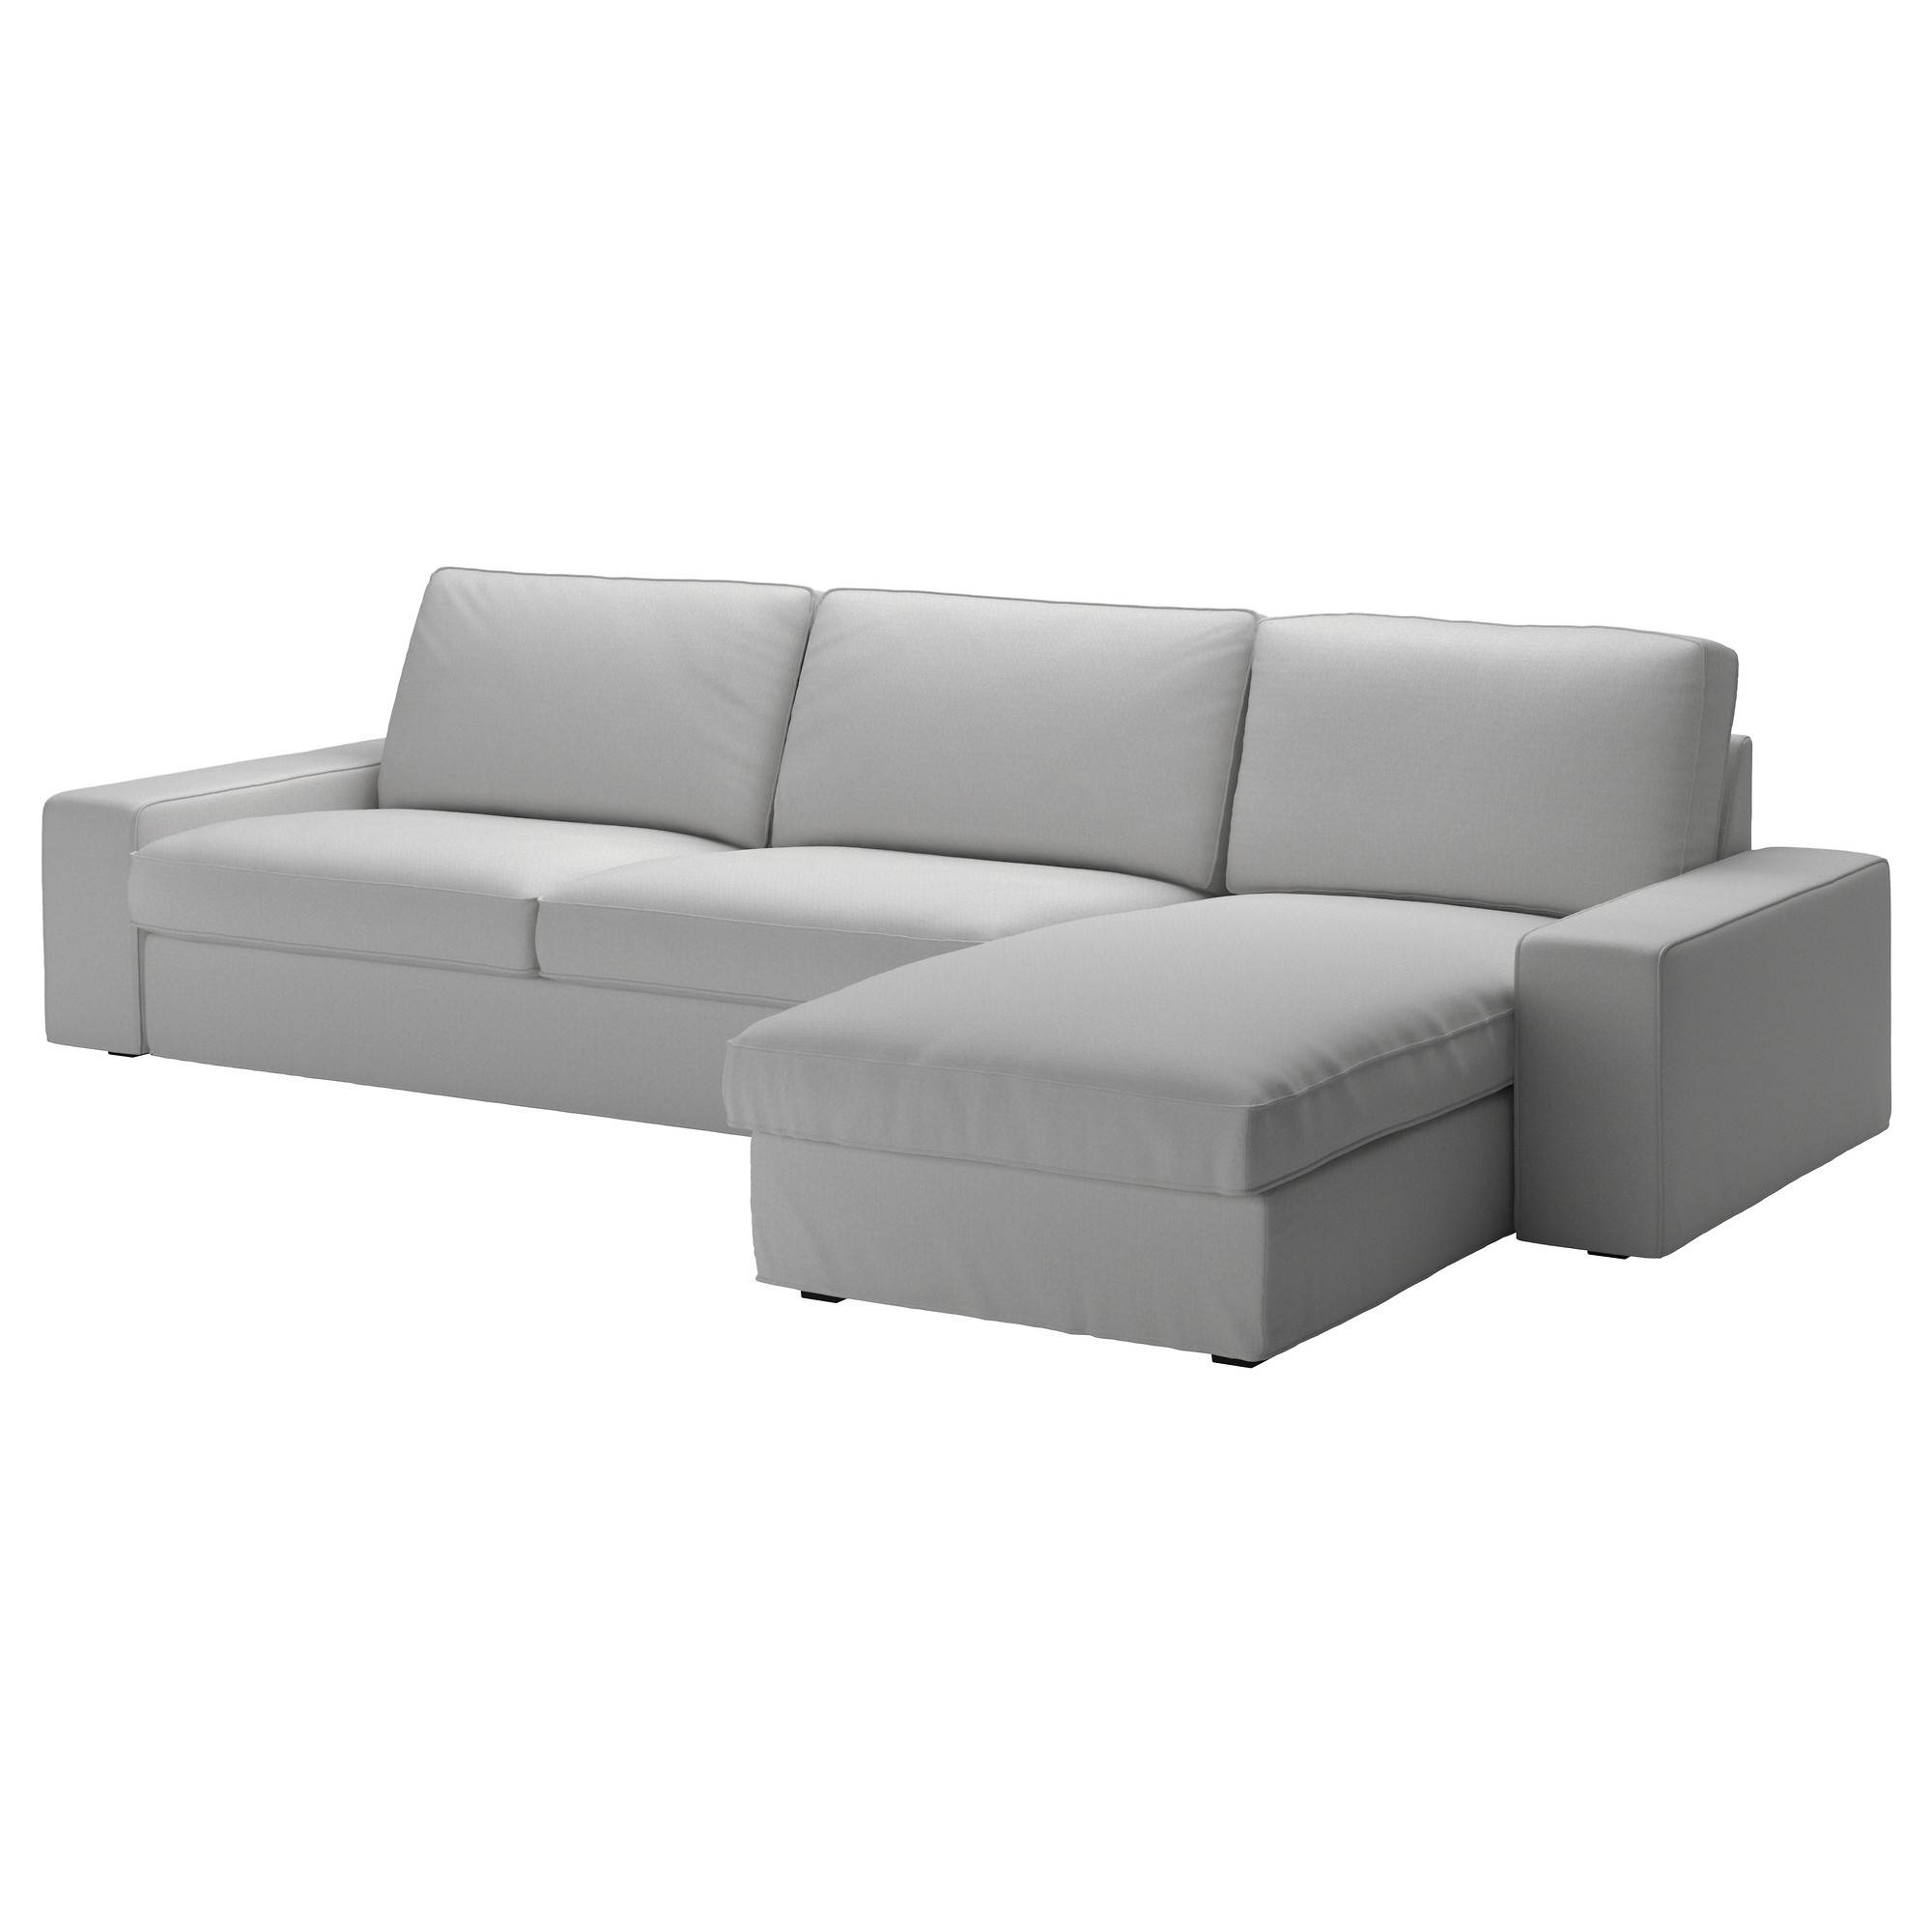 Kivik Sectional, 4-Seat - Orrsta Light Gray - Ikea with 4 Seat Couch (Image 23 of 30)